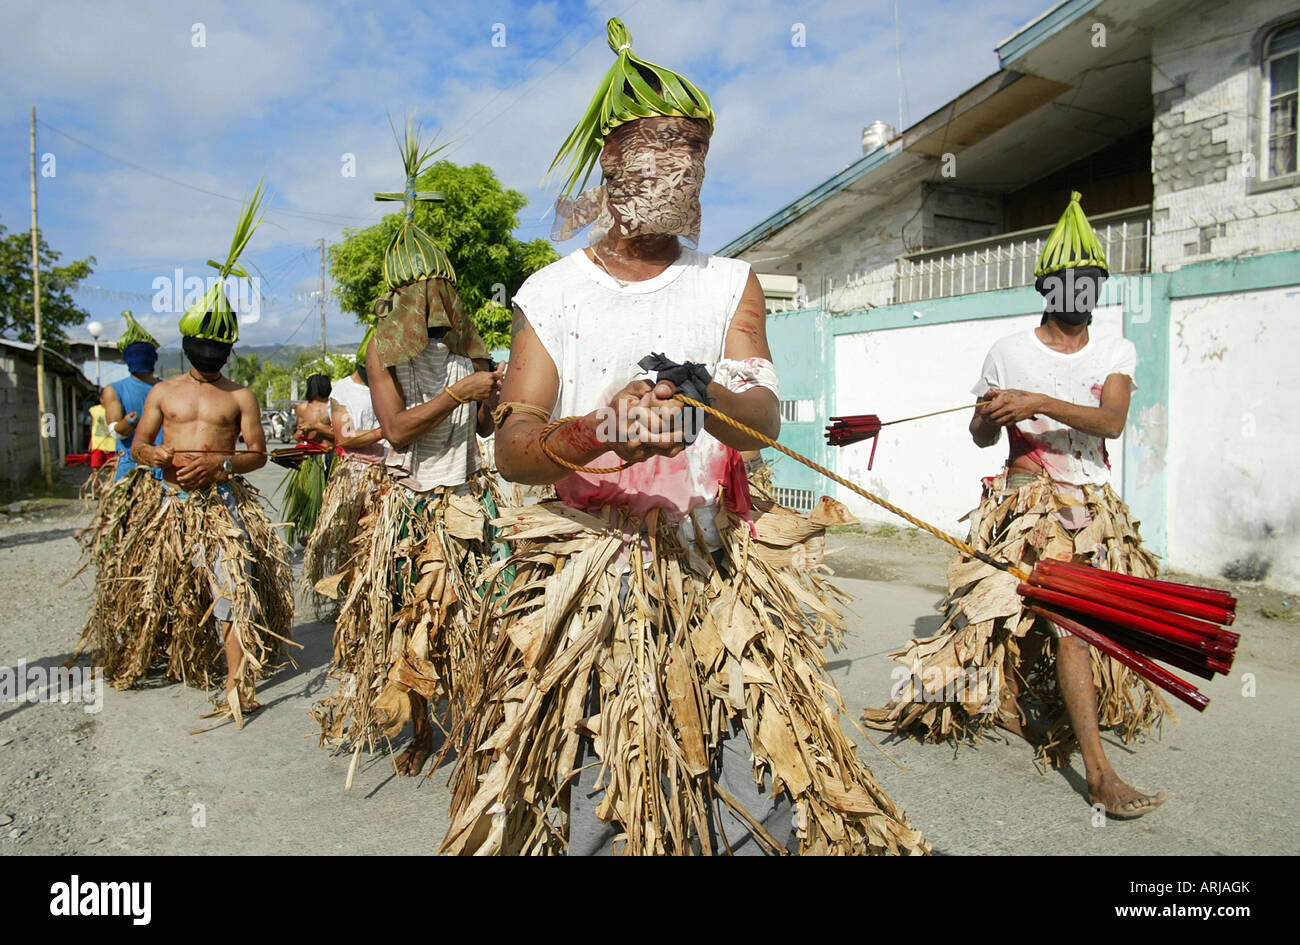 Penitent Filipinos flagellate themselves with bamboo whips on Good Friday in Mansalay, Oriental Mindoro, Philippines. Stock Photo